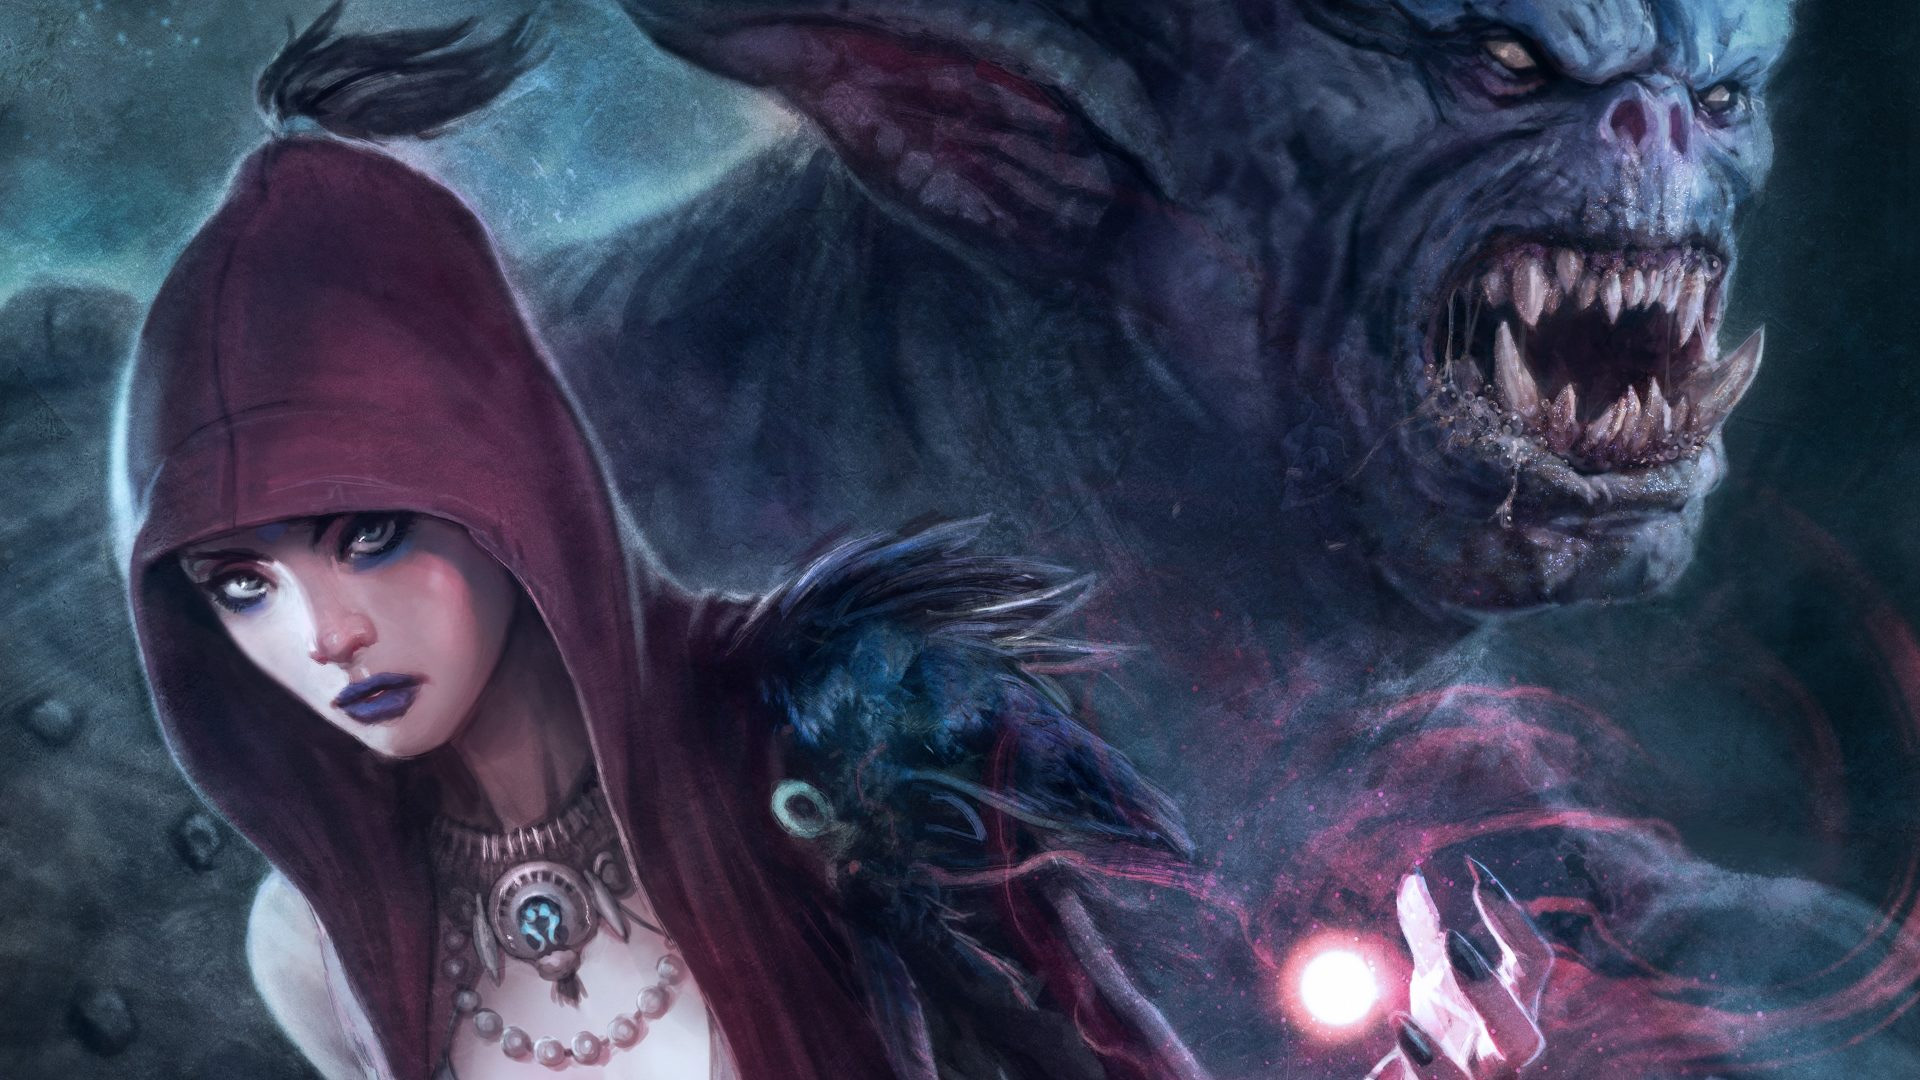 BioWare says we'll hear more about Dragon Age next month screenshot